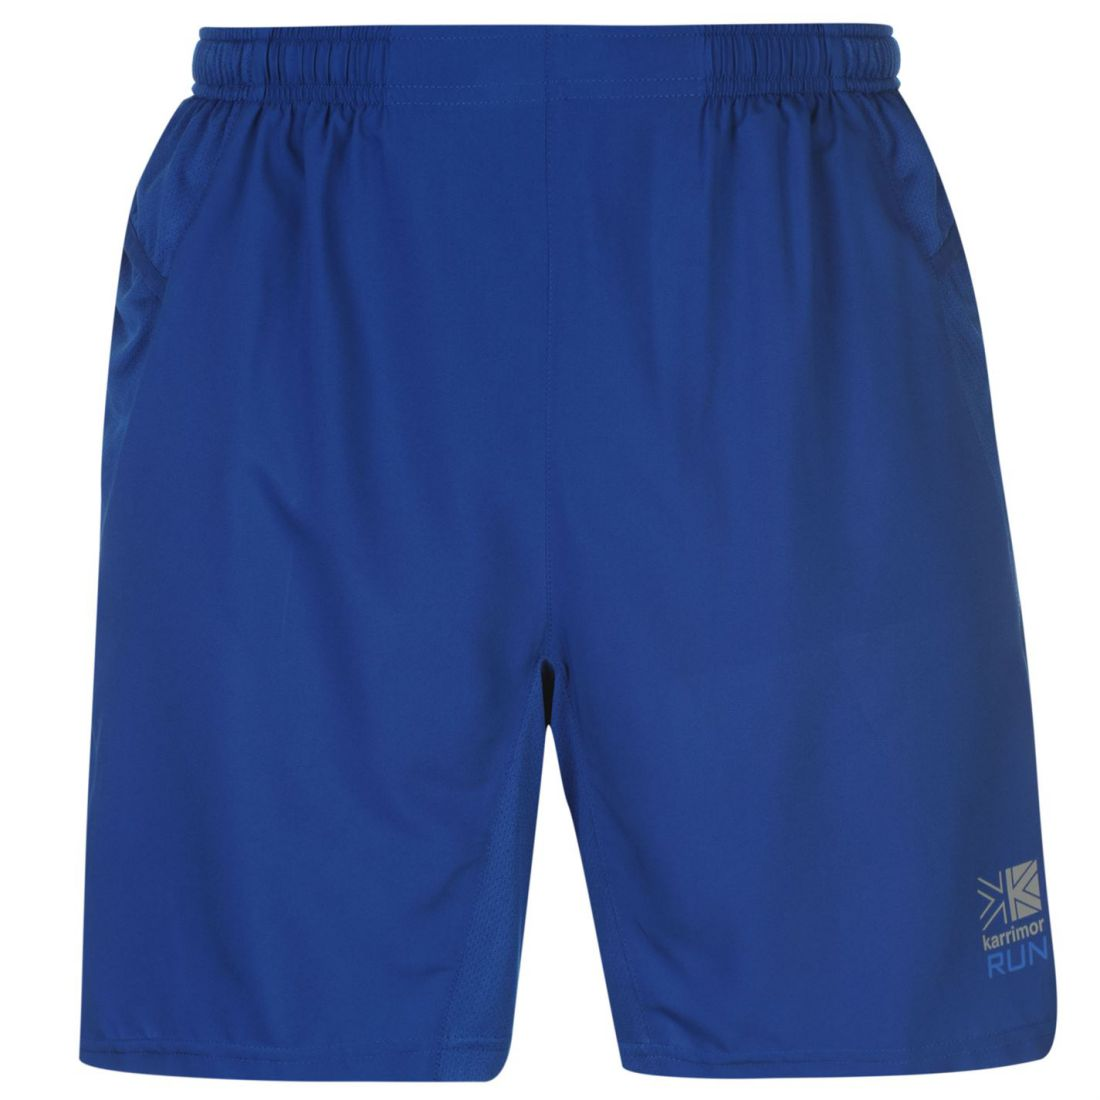 2c020793f Details about Karrimor Mens X 2 in 1 Running Shorts Pants Trousers Bottoms  Breathable